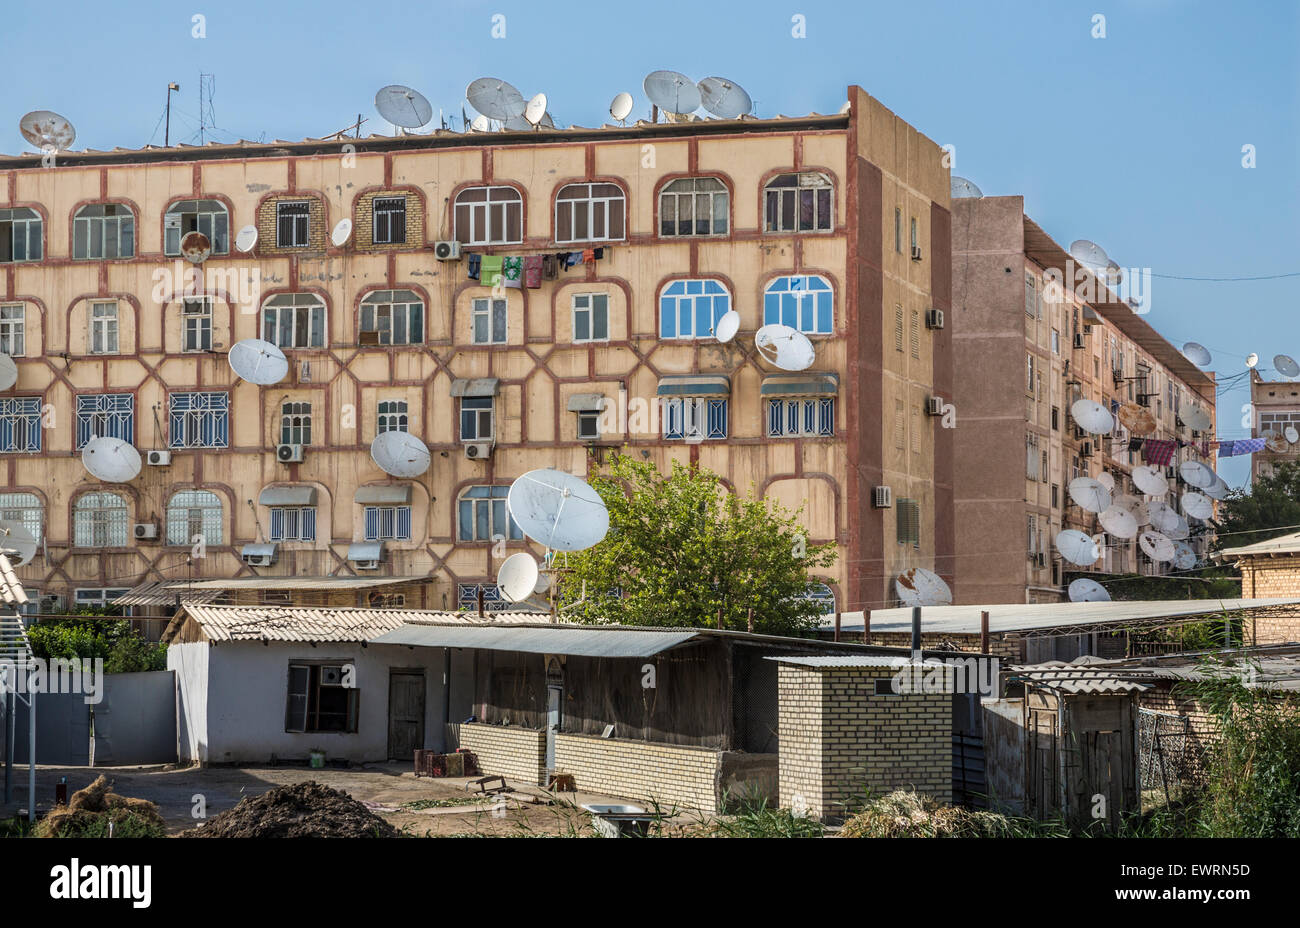 Satellite dishes sprout like mushrooms from Soviet-era apartment blocks in Mary, Turkmenistan Stock Photo